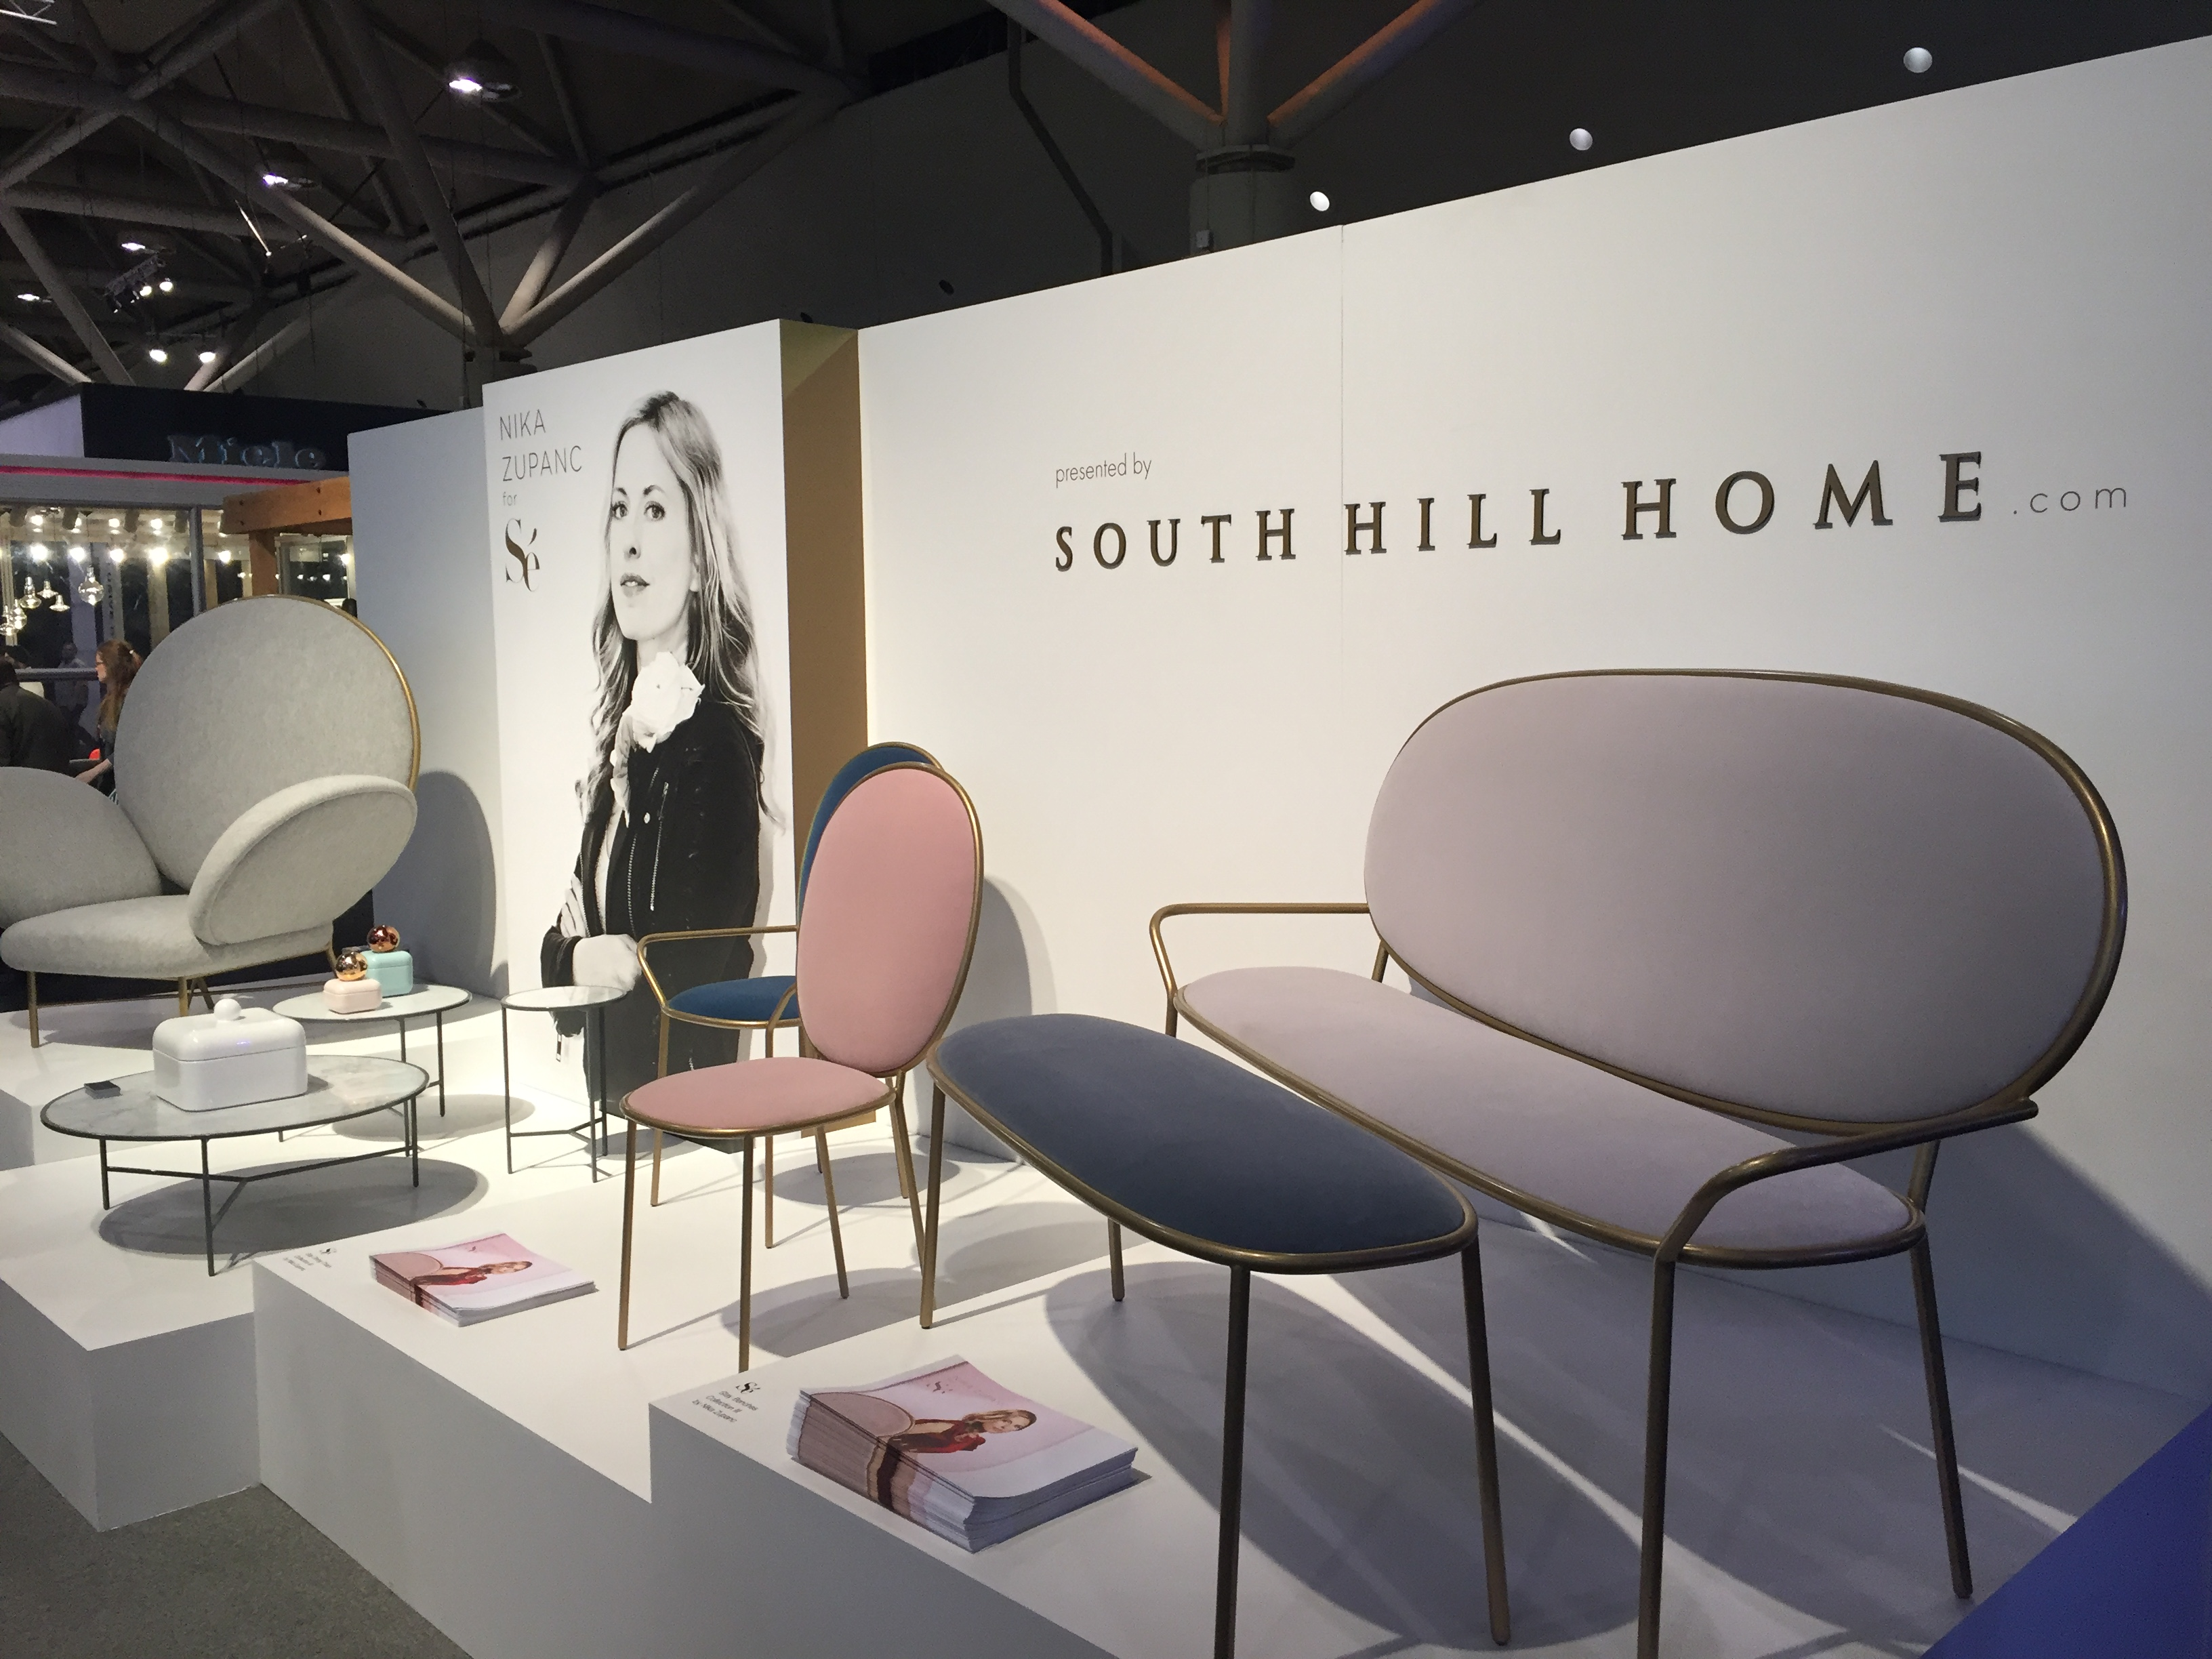 South Hill Home Showcased This Collection Designed By Nika Zupanc For Se. I  Couldnu0027t Get A Better Picture Of This Modern Yet Feminine Furniture For The  ...